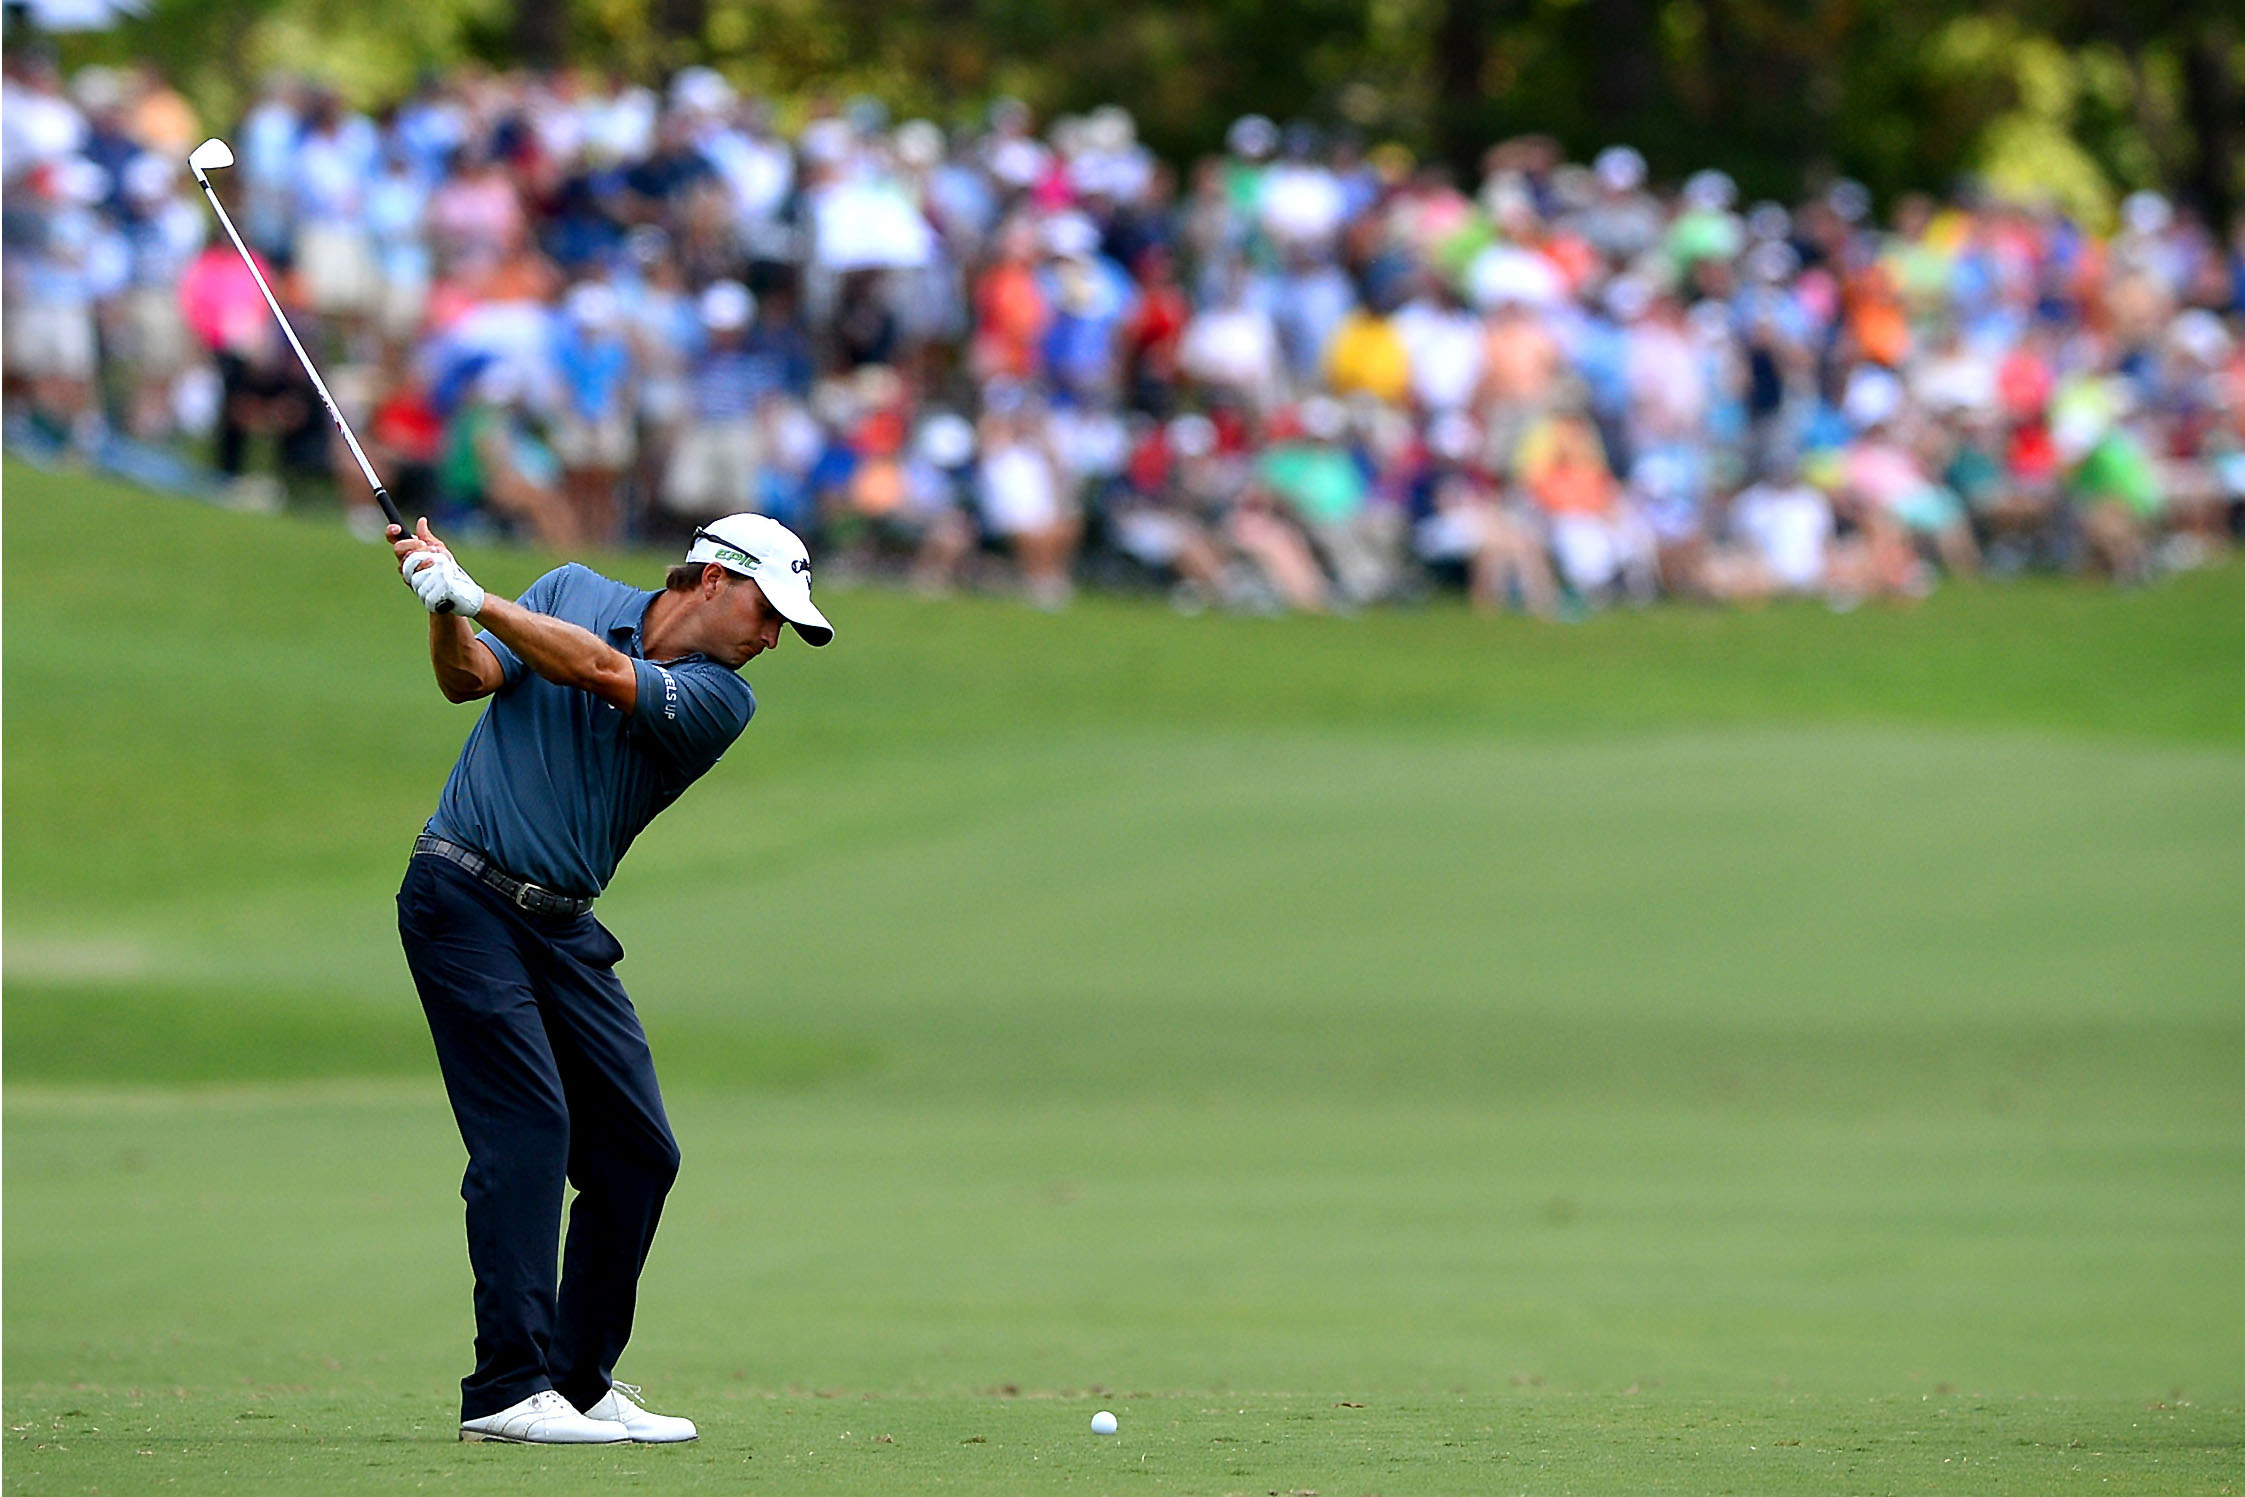 Kevin Kisner prepares to hit his second shot from the 7th fairway in the third round of the PGA Championship at Quail Hollow Club in Charlotte, N.C., on Saturday, Aug. 12, 2017.